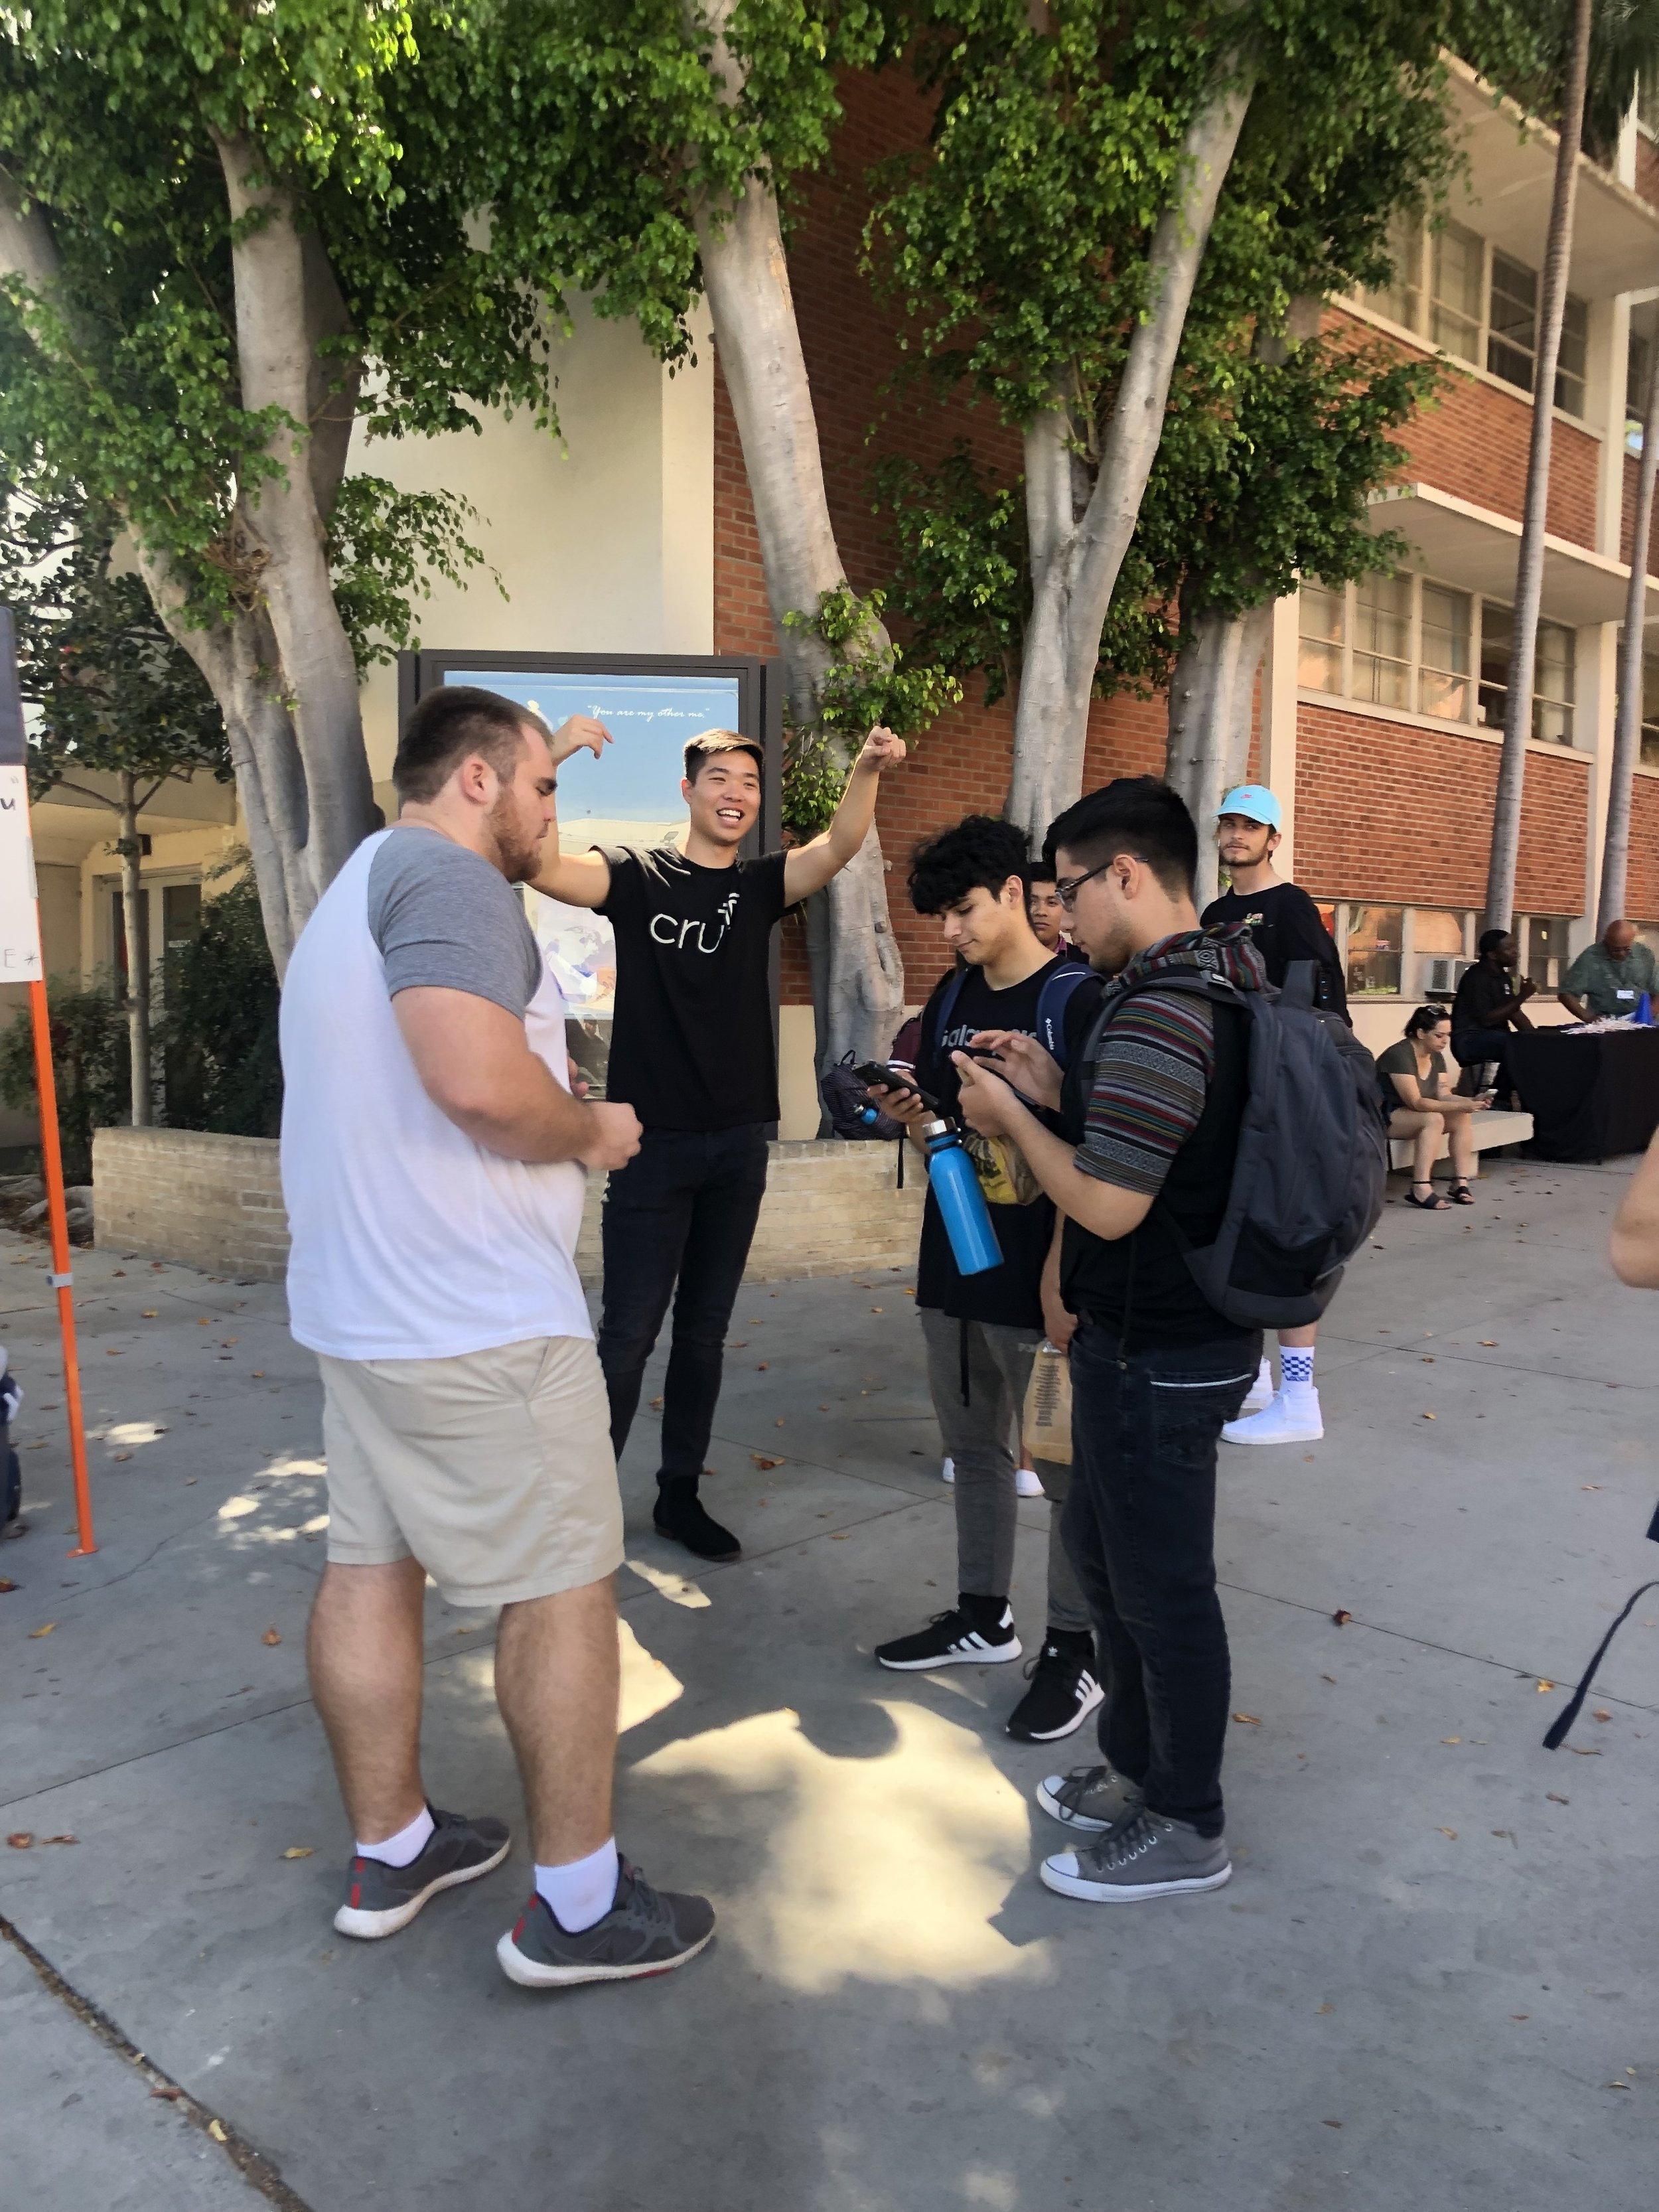 Students who visited booths received free goodies and connected with the club's current officers.